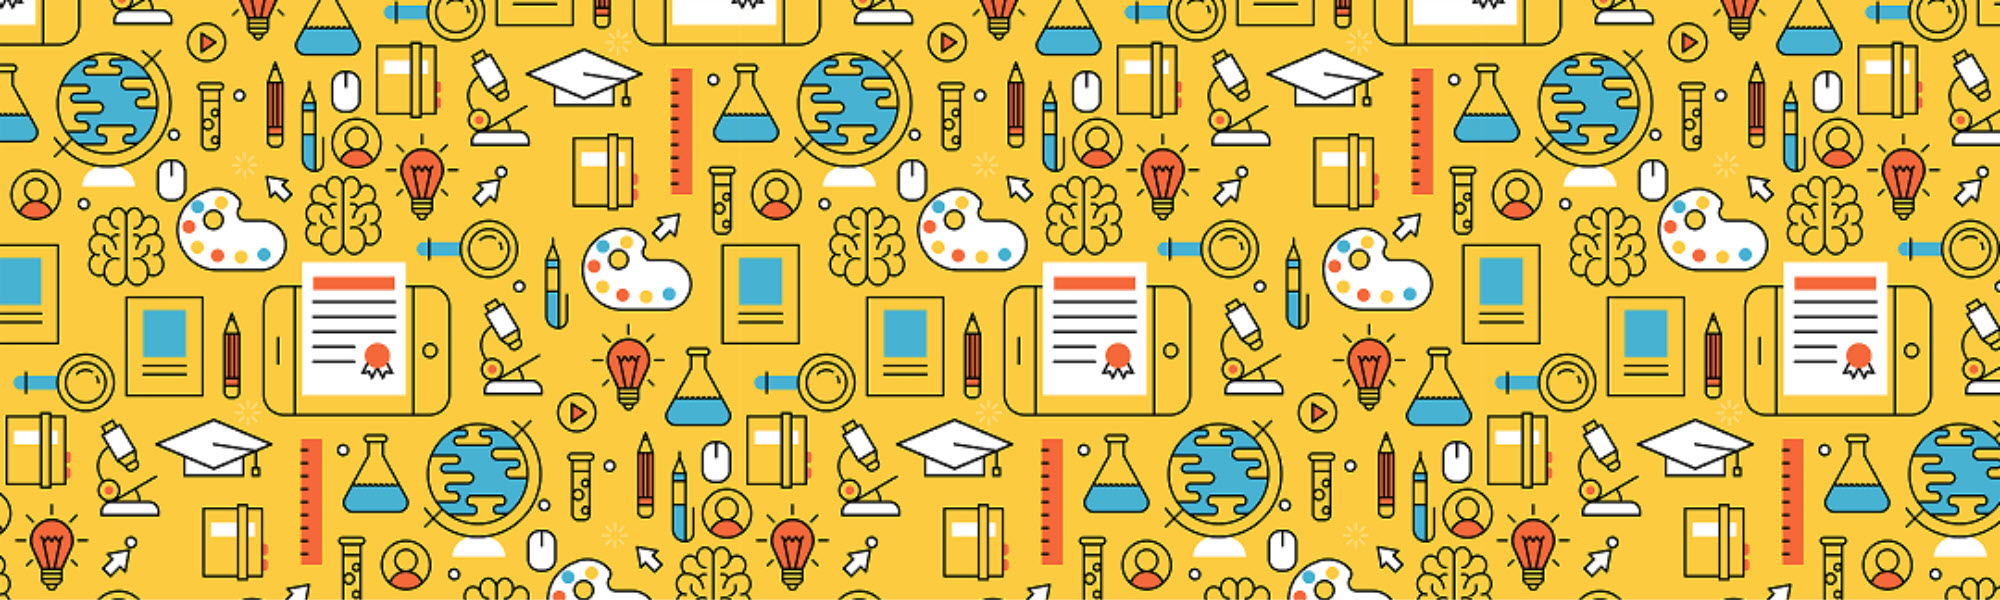 Instructional Design and Support